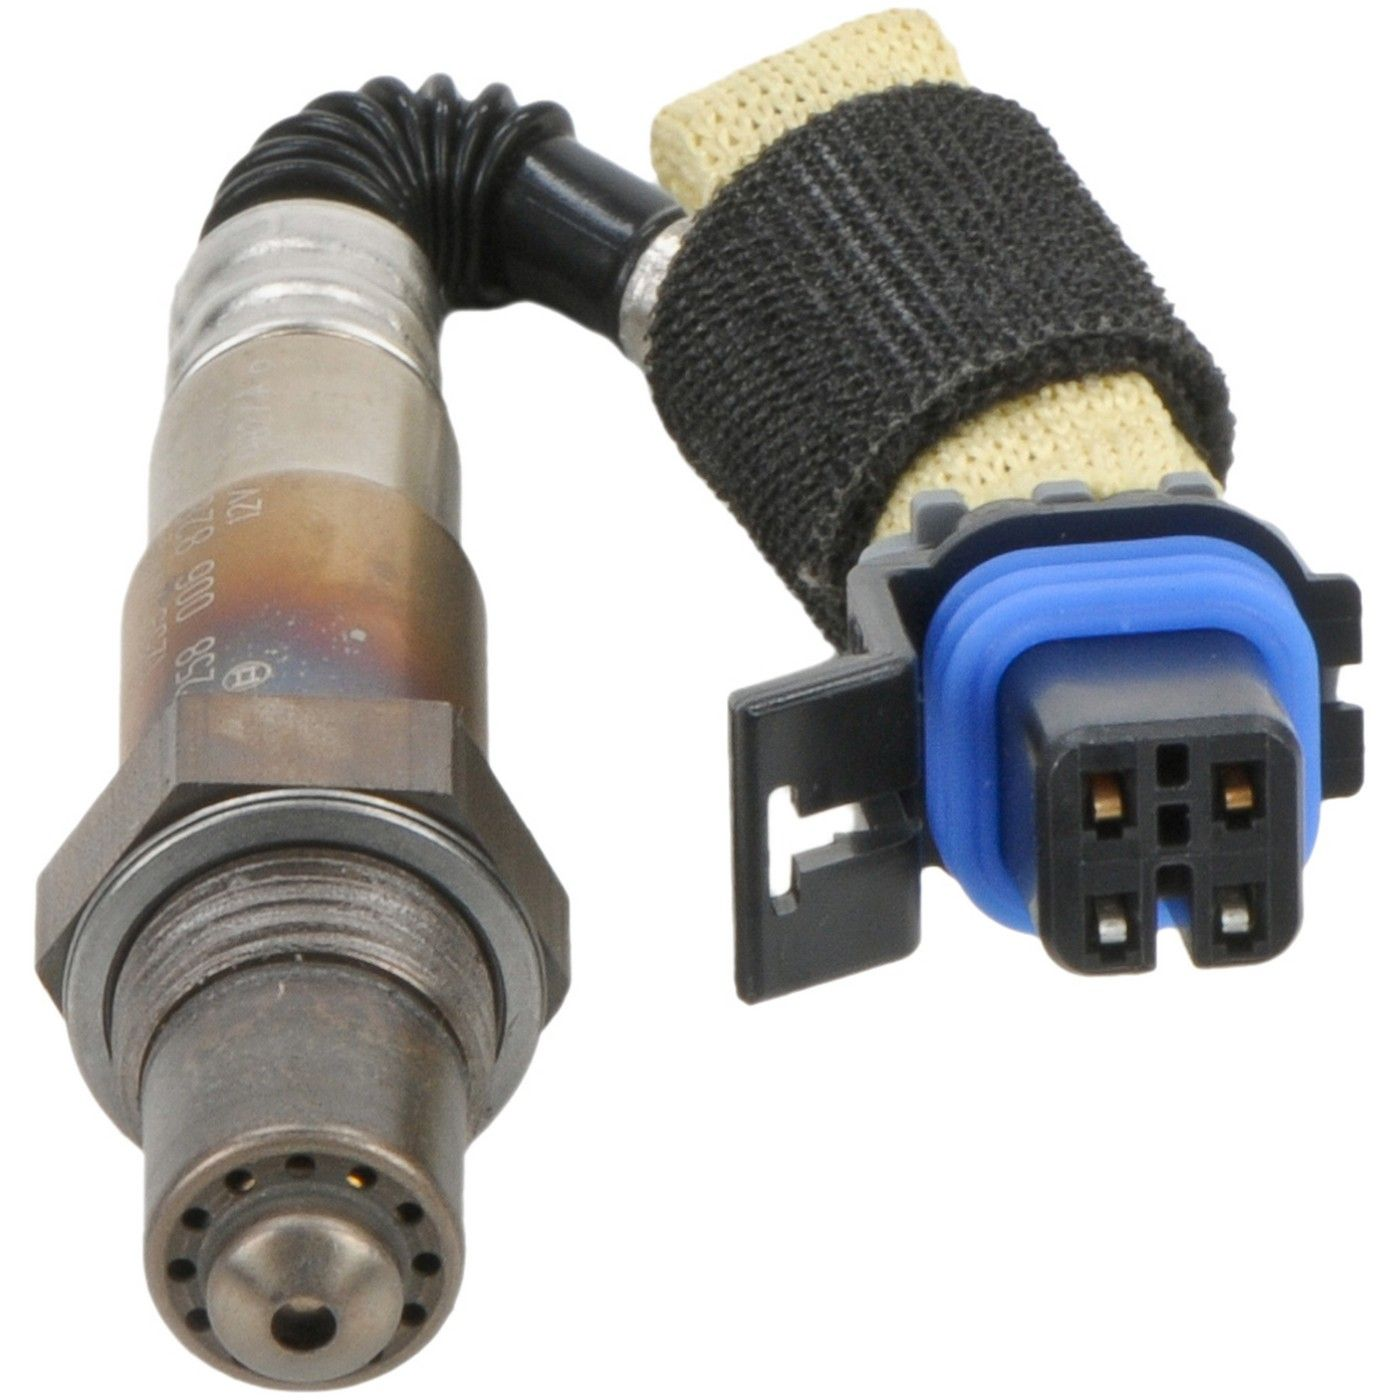 Bs Bac further Cadllac Cabn Ar Flter Escalade Cts Sts Srx moreover Sbf Fuel Relay together with D My Heater Doesnt Work Help Tsc Fuses additionally F. on 2007 cadillac cts fuel filter location